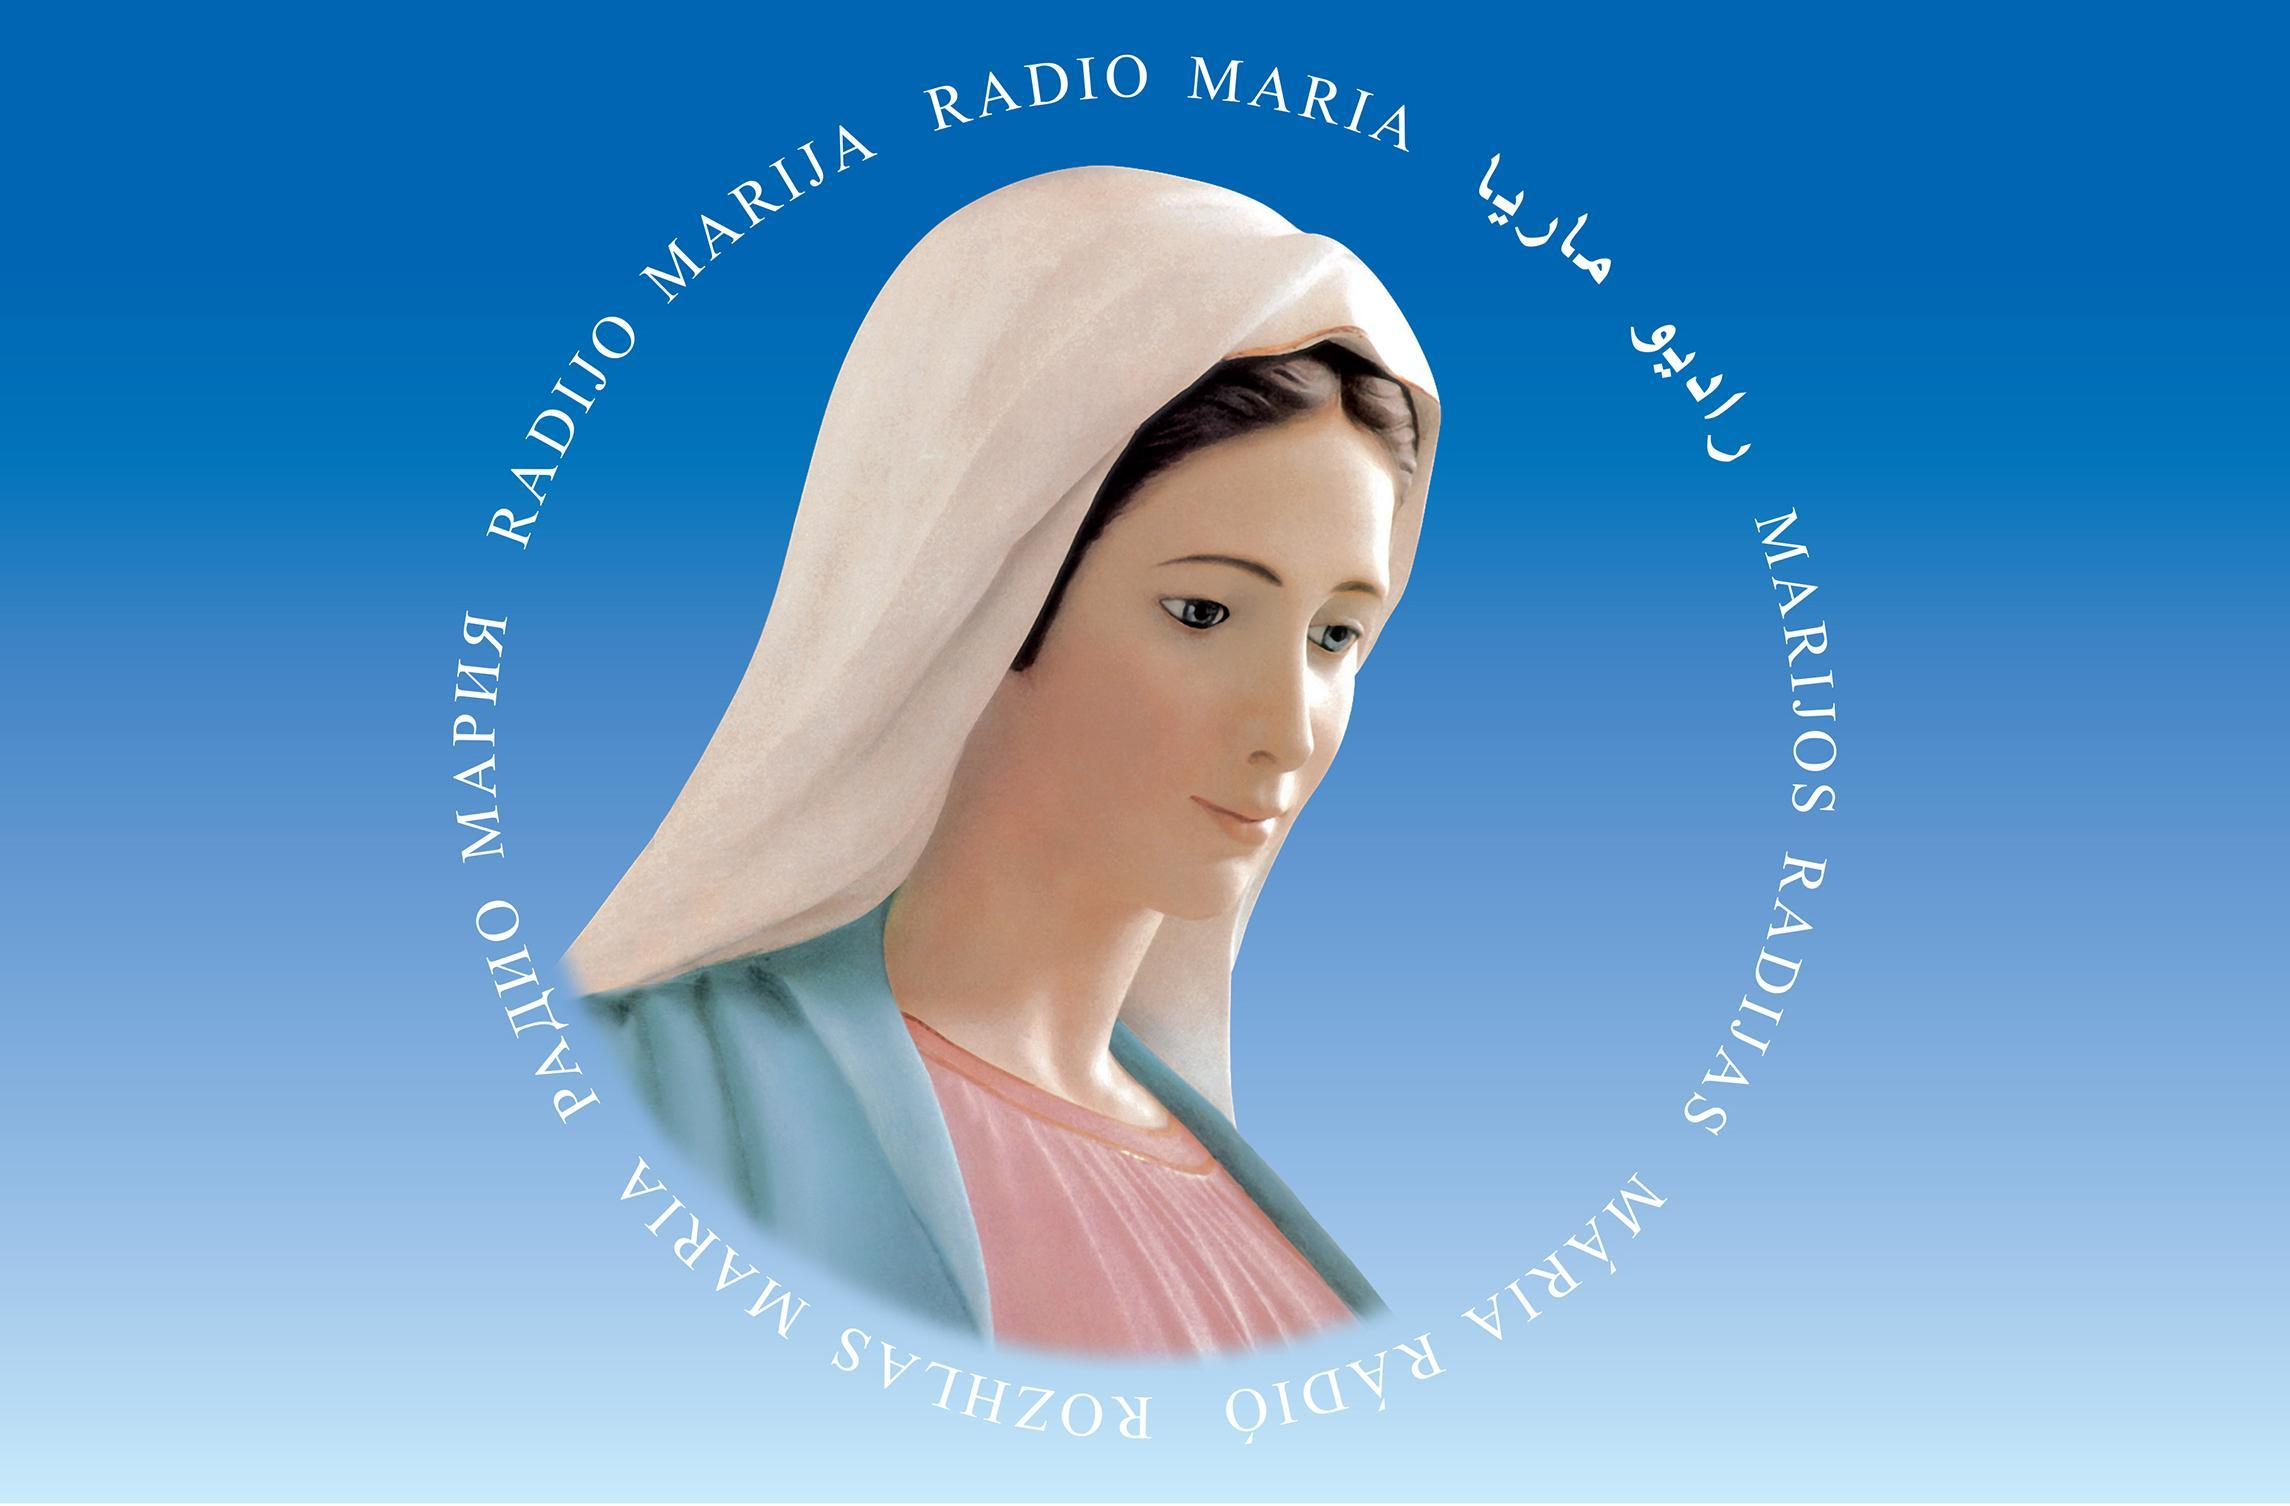 Happy anniversary to Radio Maria Holland!